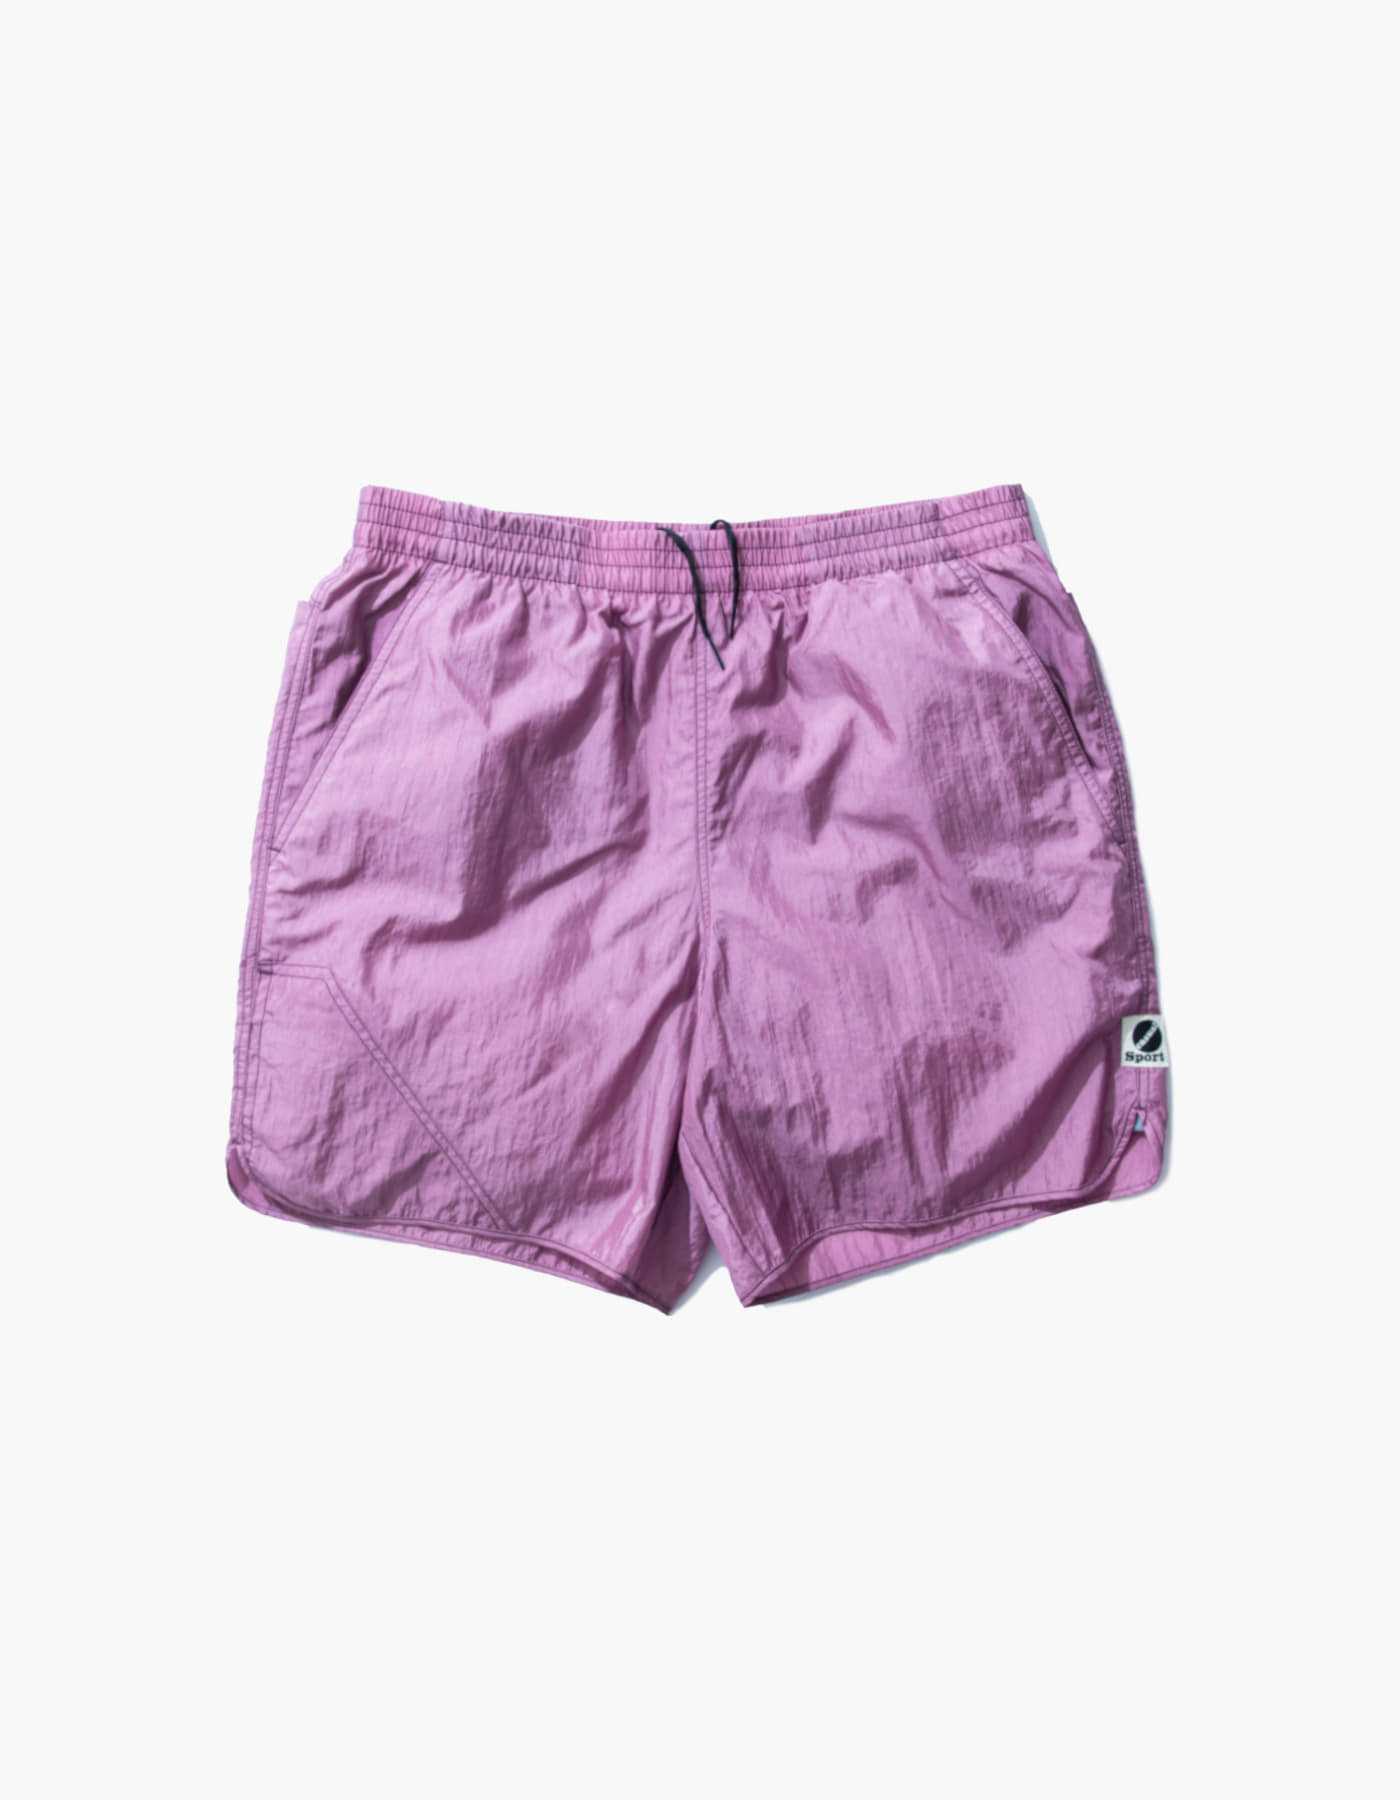 NYLON DIAMOND WASHER SHORTS II / LAVENDER